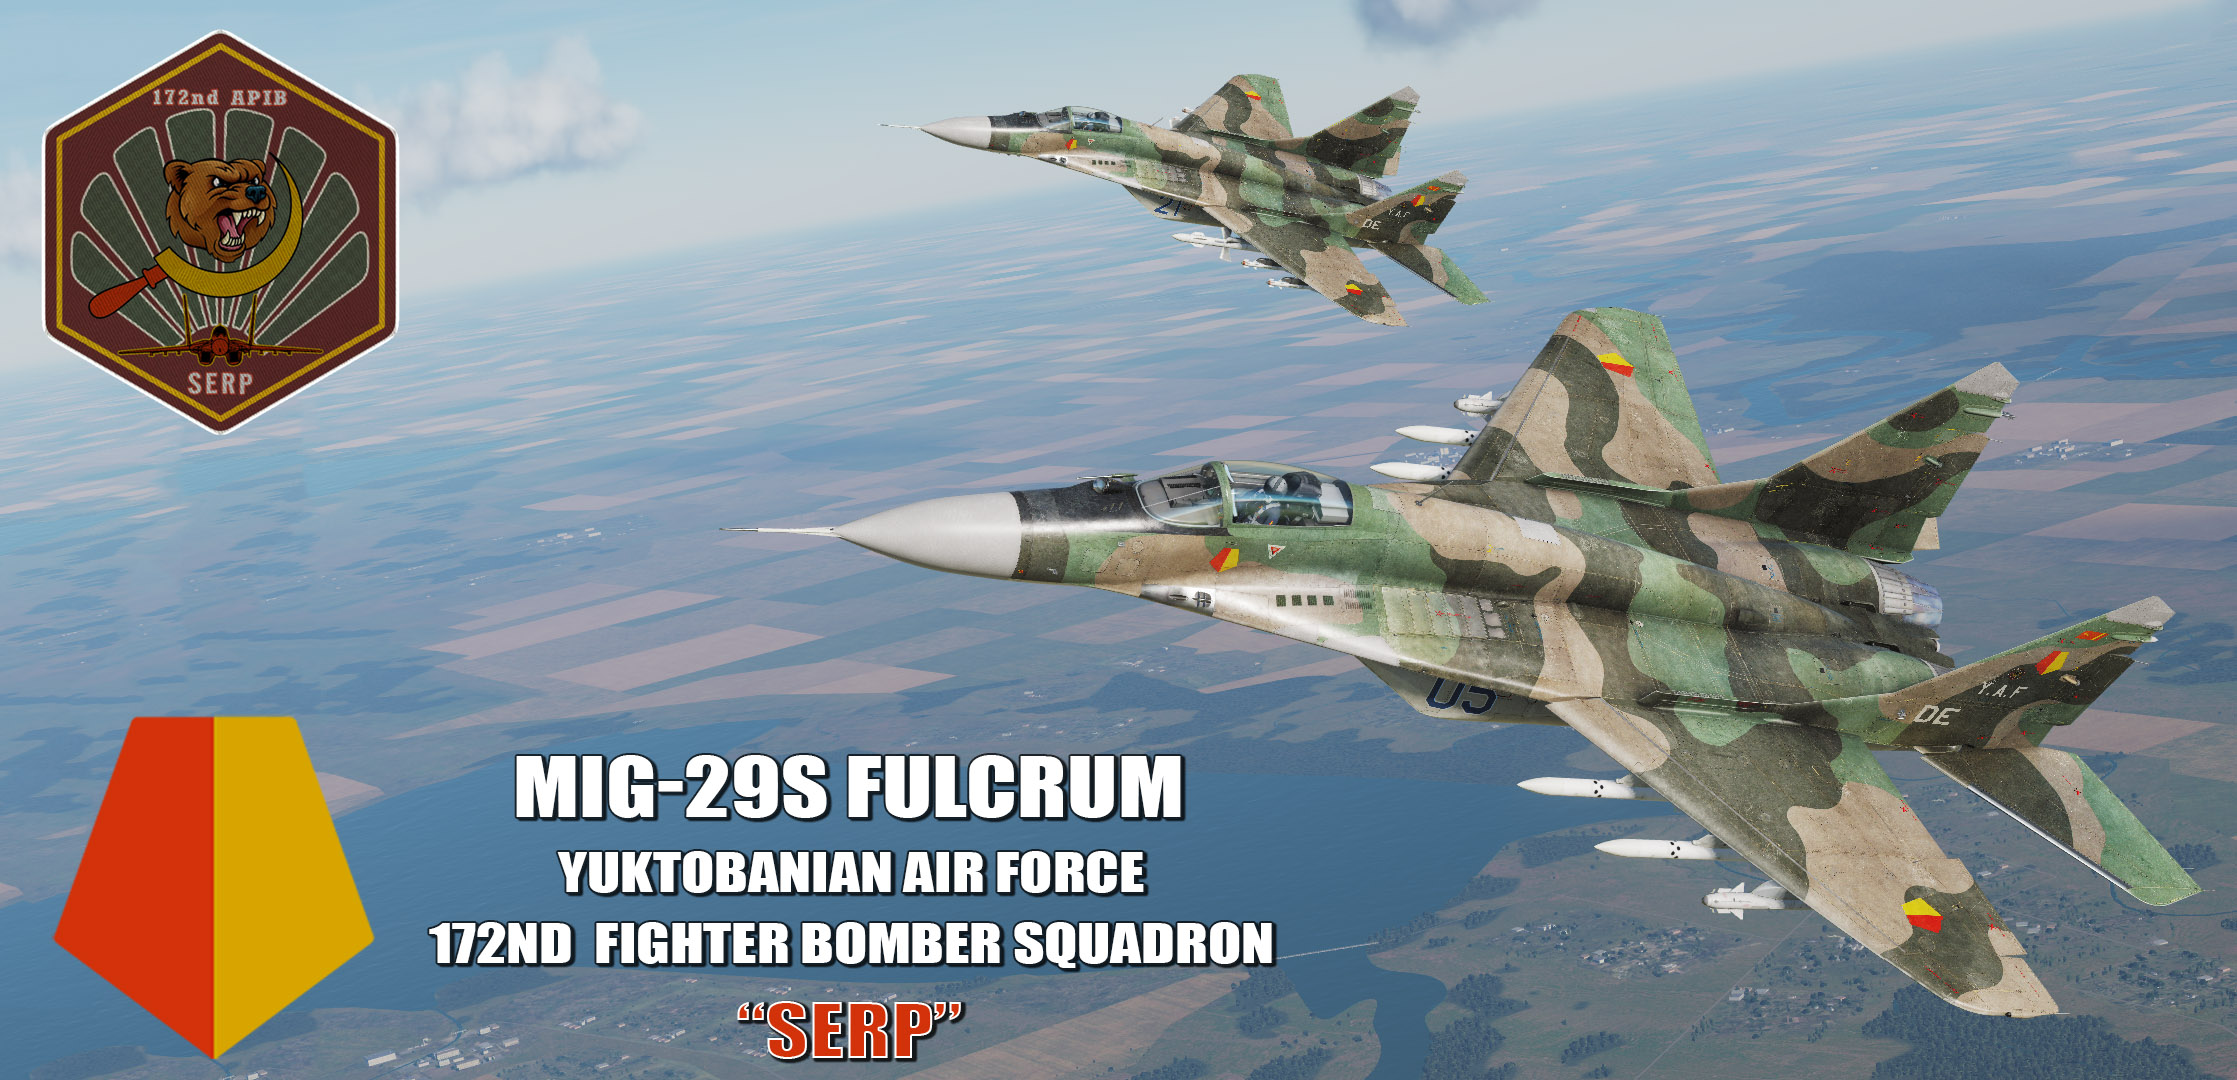 "Ace Combat - Yuktobanian Air Force 172nd Fighter Bomber Squadron ""Serp"" MiG-29S Fulcrum"